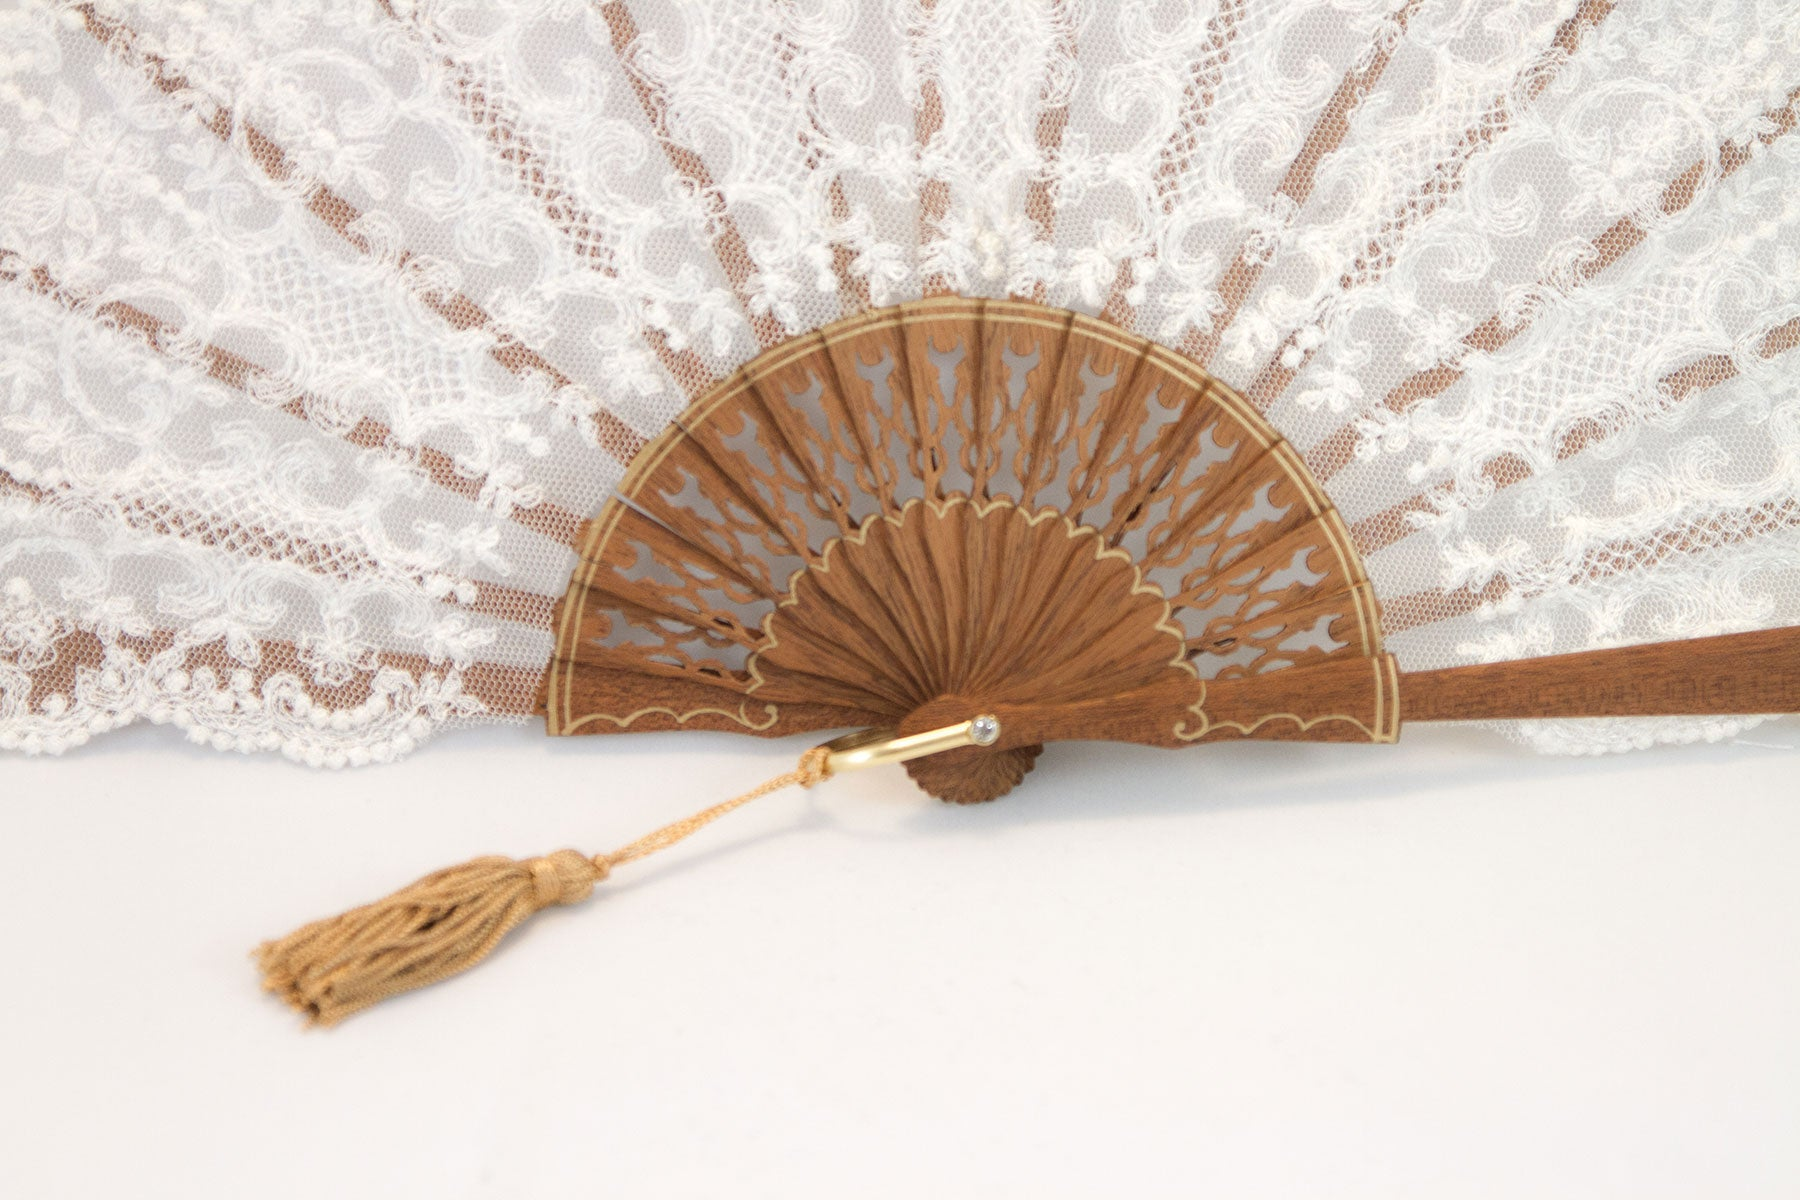 Rockcoco Bruges delicate handmade cream lace luxury hand fan lace detail